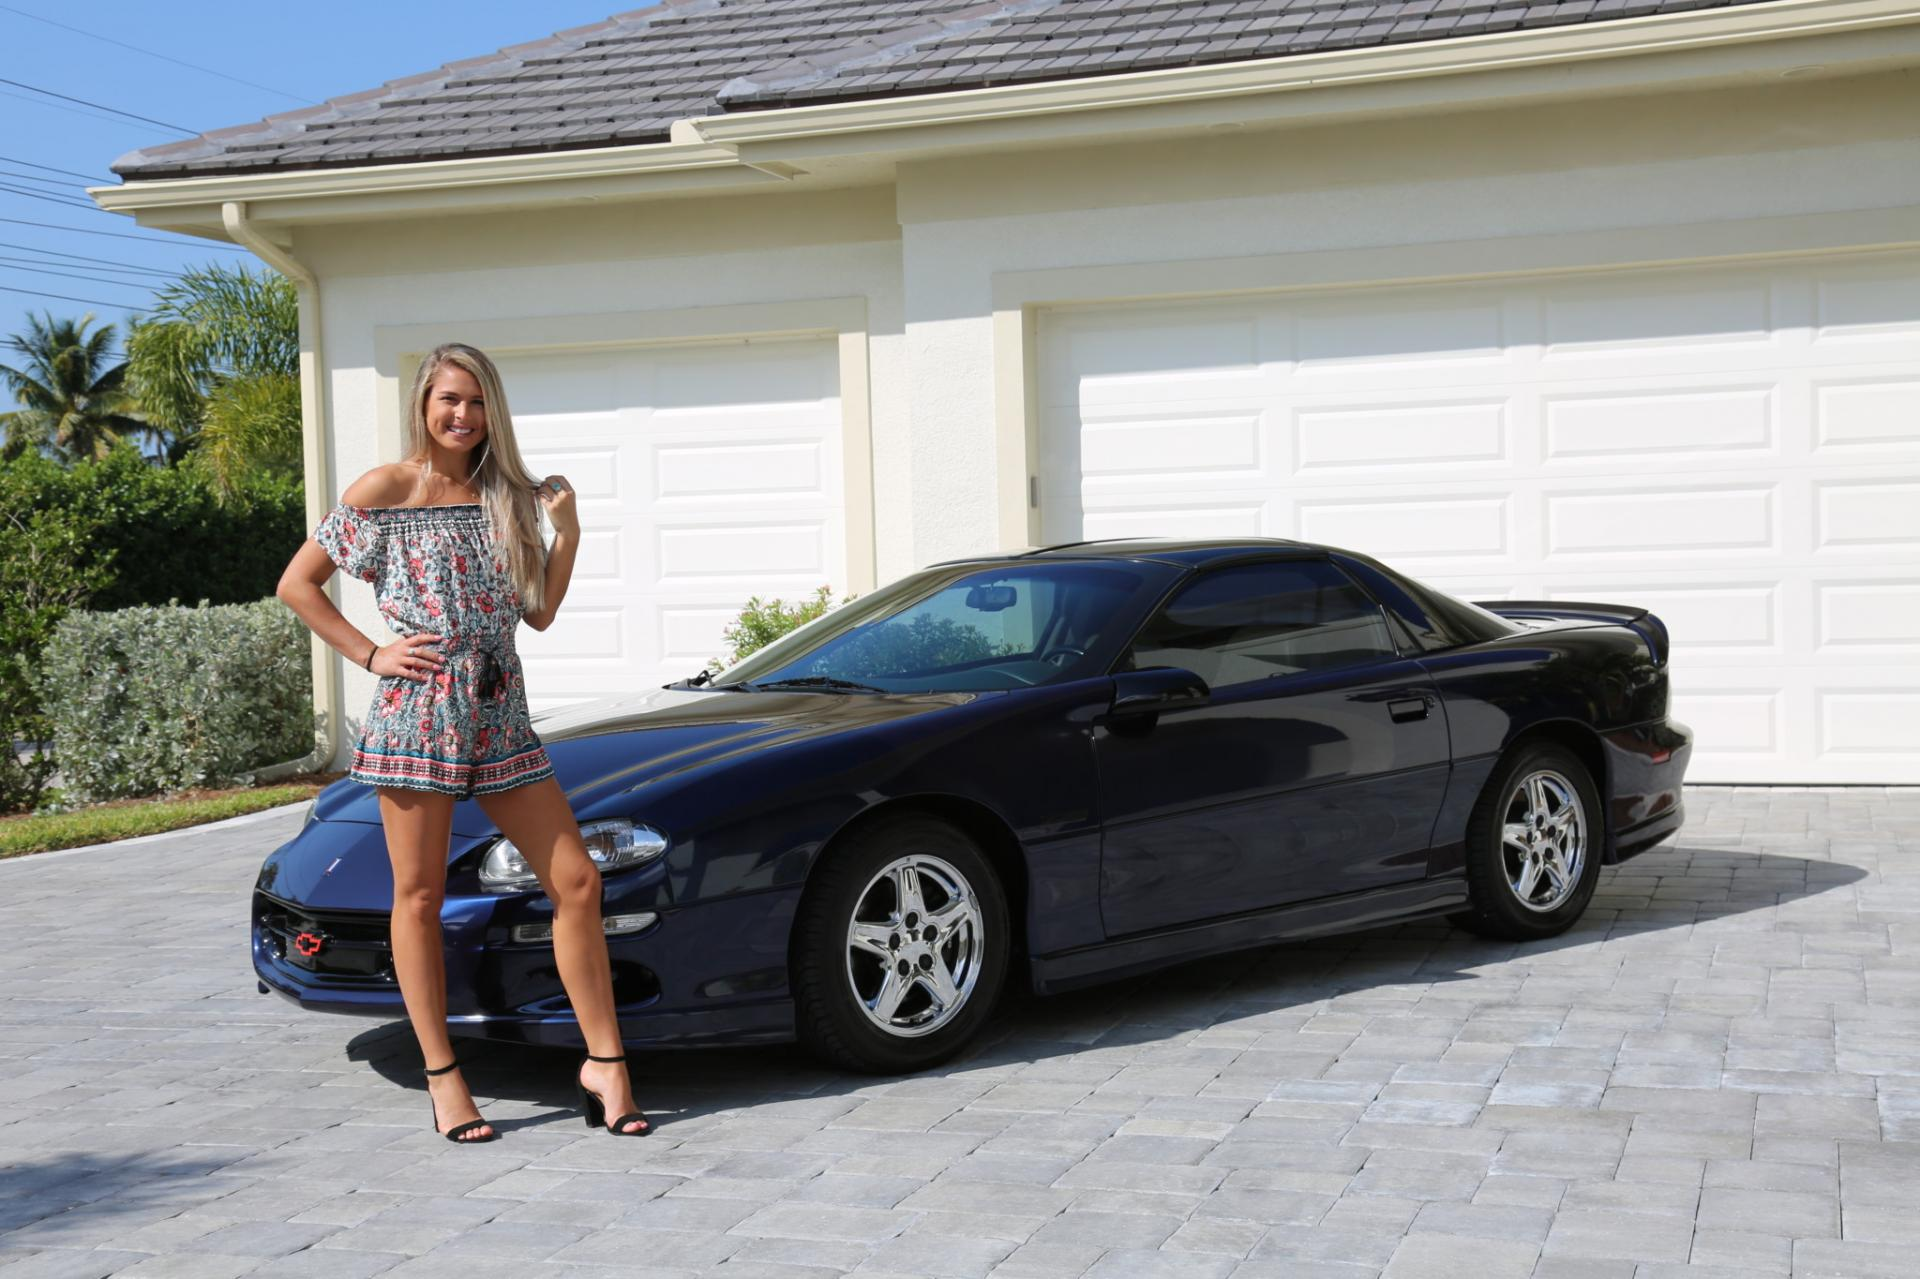 Used 1999 Chevrolet Camaro Z28 for sale $16,500 at Muscle Cars for Sale Inc. in Fort Myers FL 33912 2